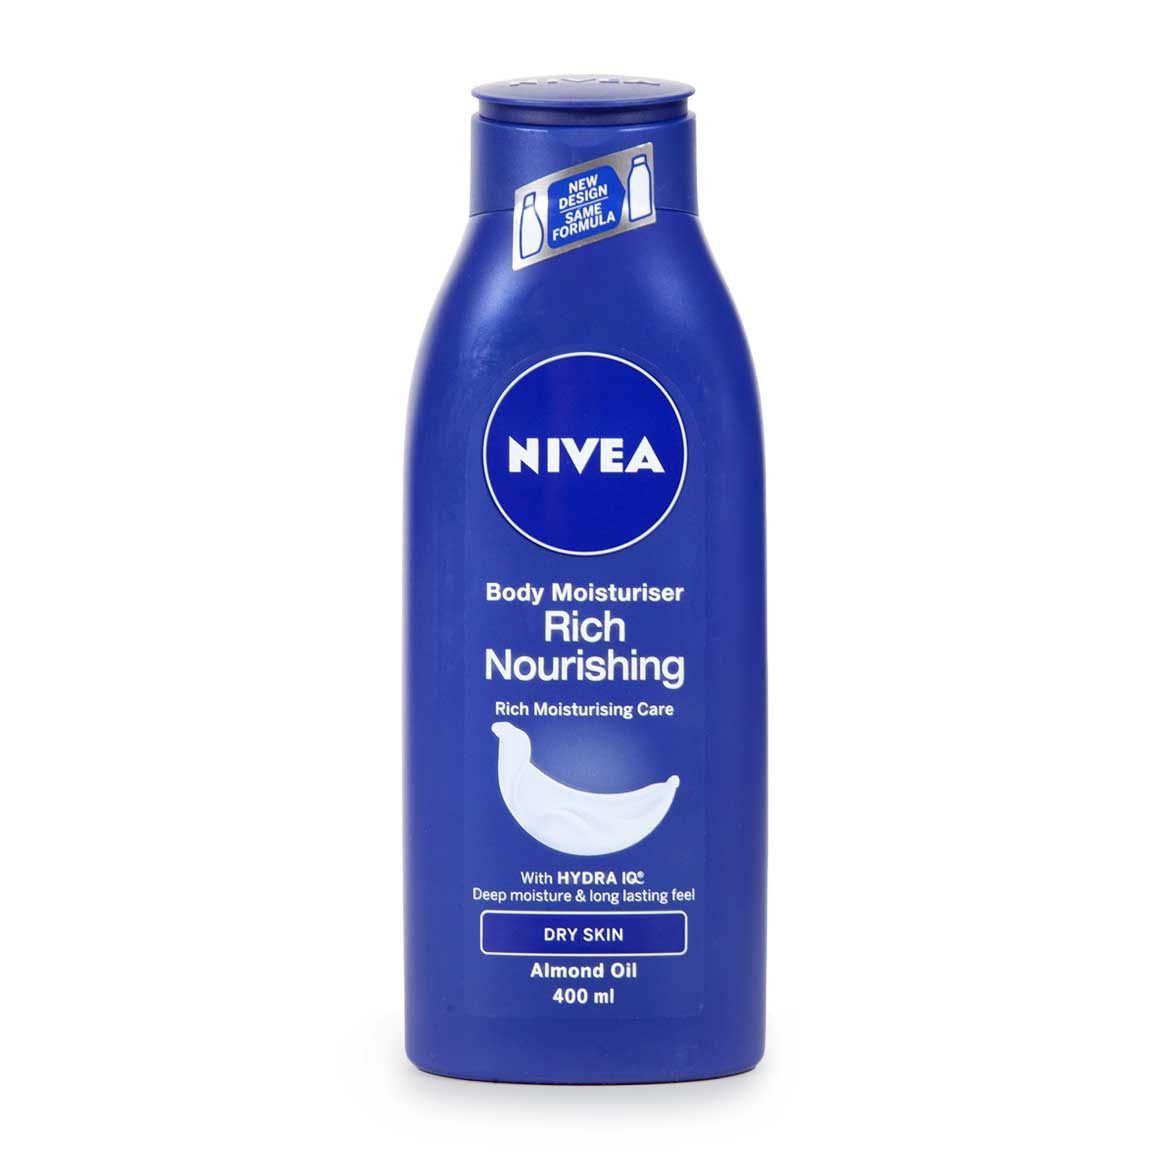 Food Home Clothing General Merchandise Nivea Extra White Firming Lotion Spf15 400 Ml Available Online